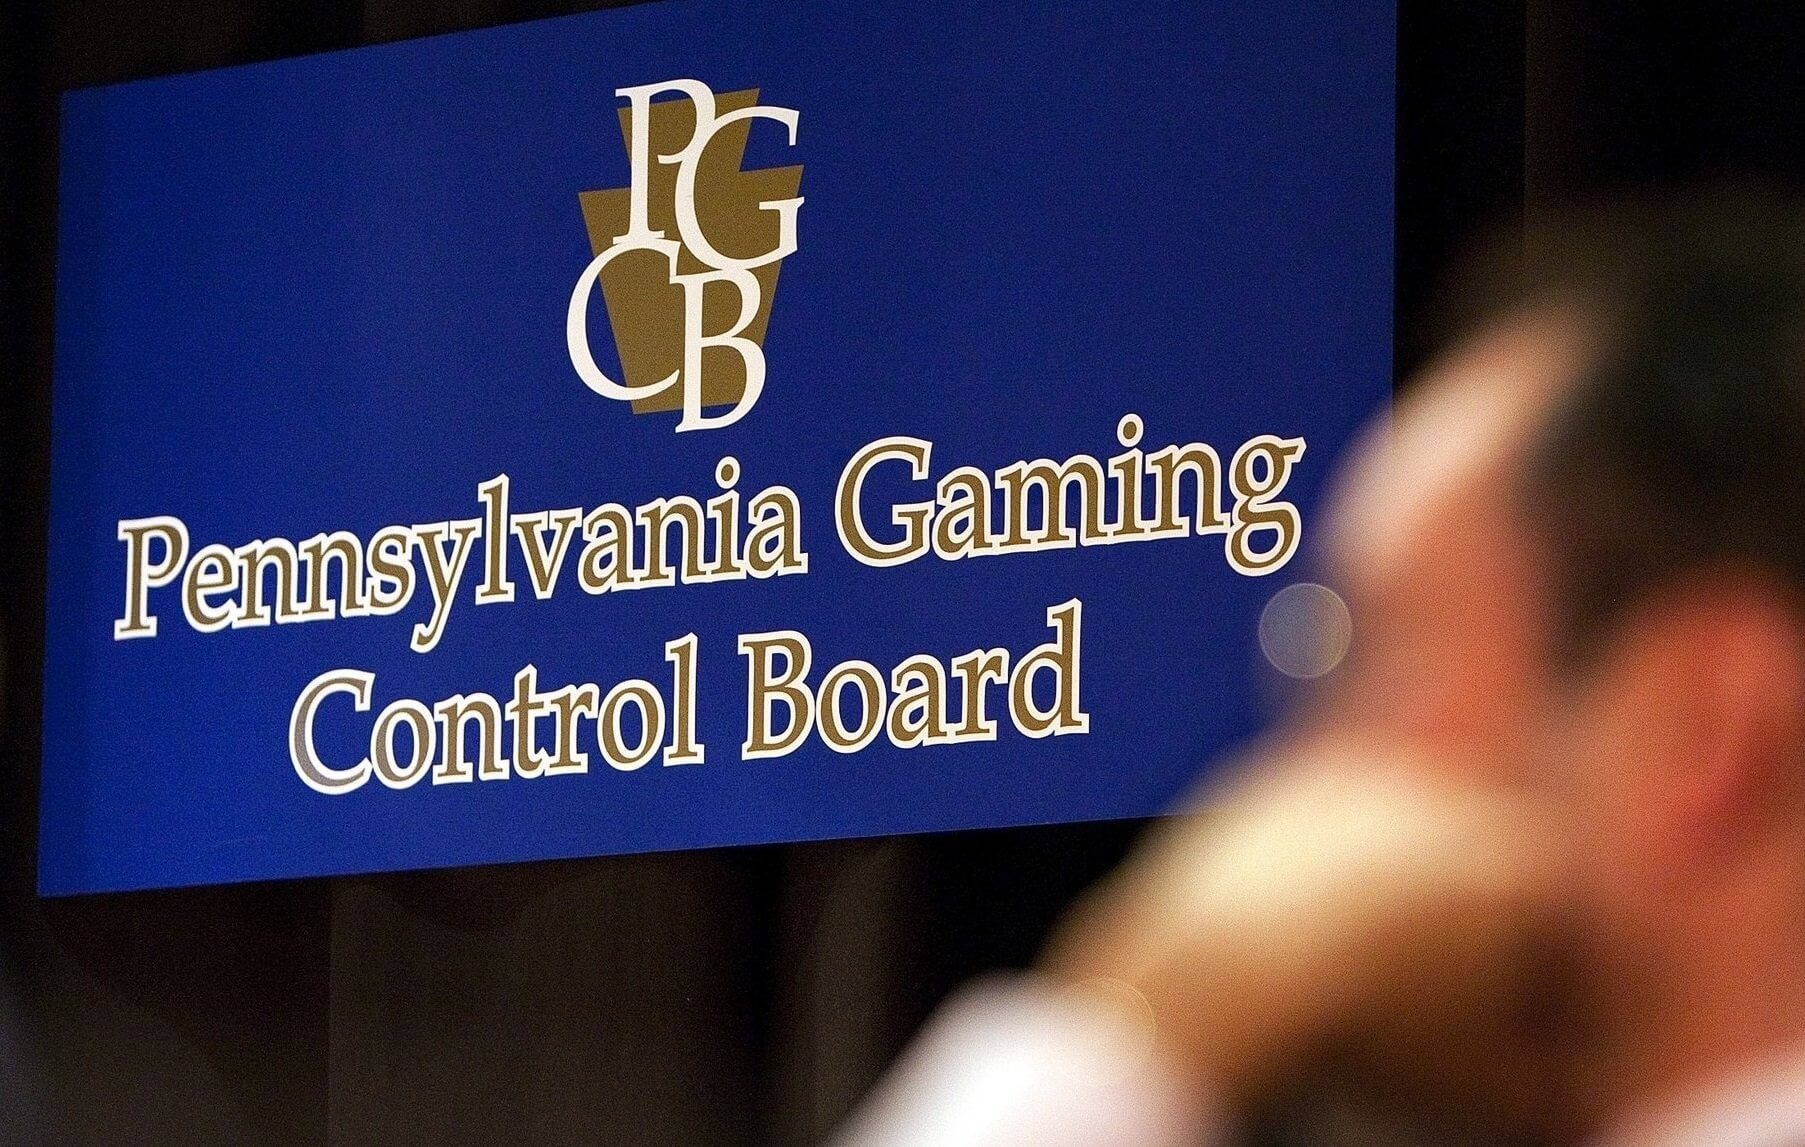 PA Online Casinos are regulated by the Pennsylvania Gaming Control Board